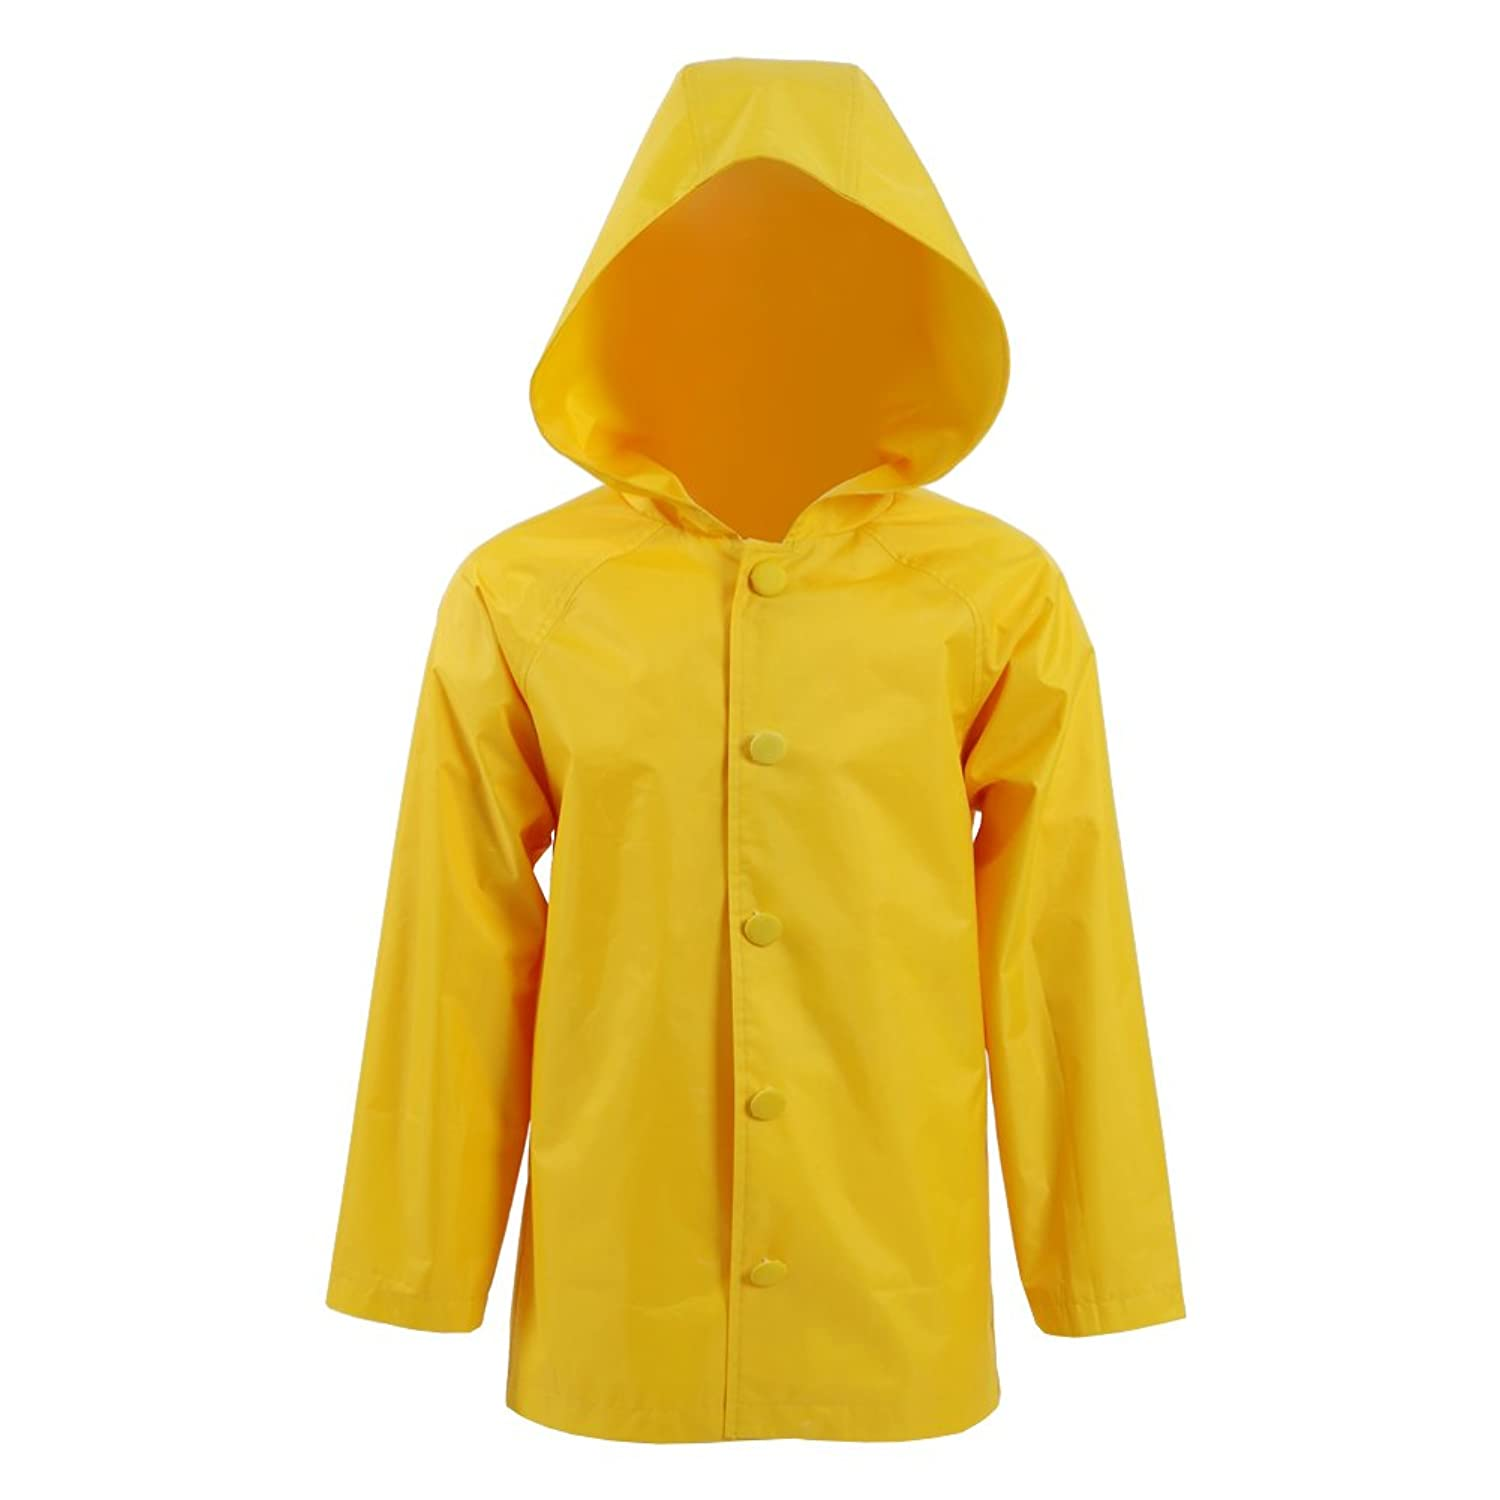 Amazon.com: Splashy Nylon Children's Rain Jacket: Clothing